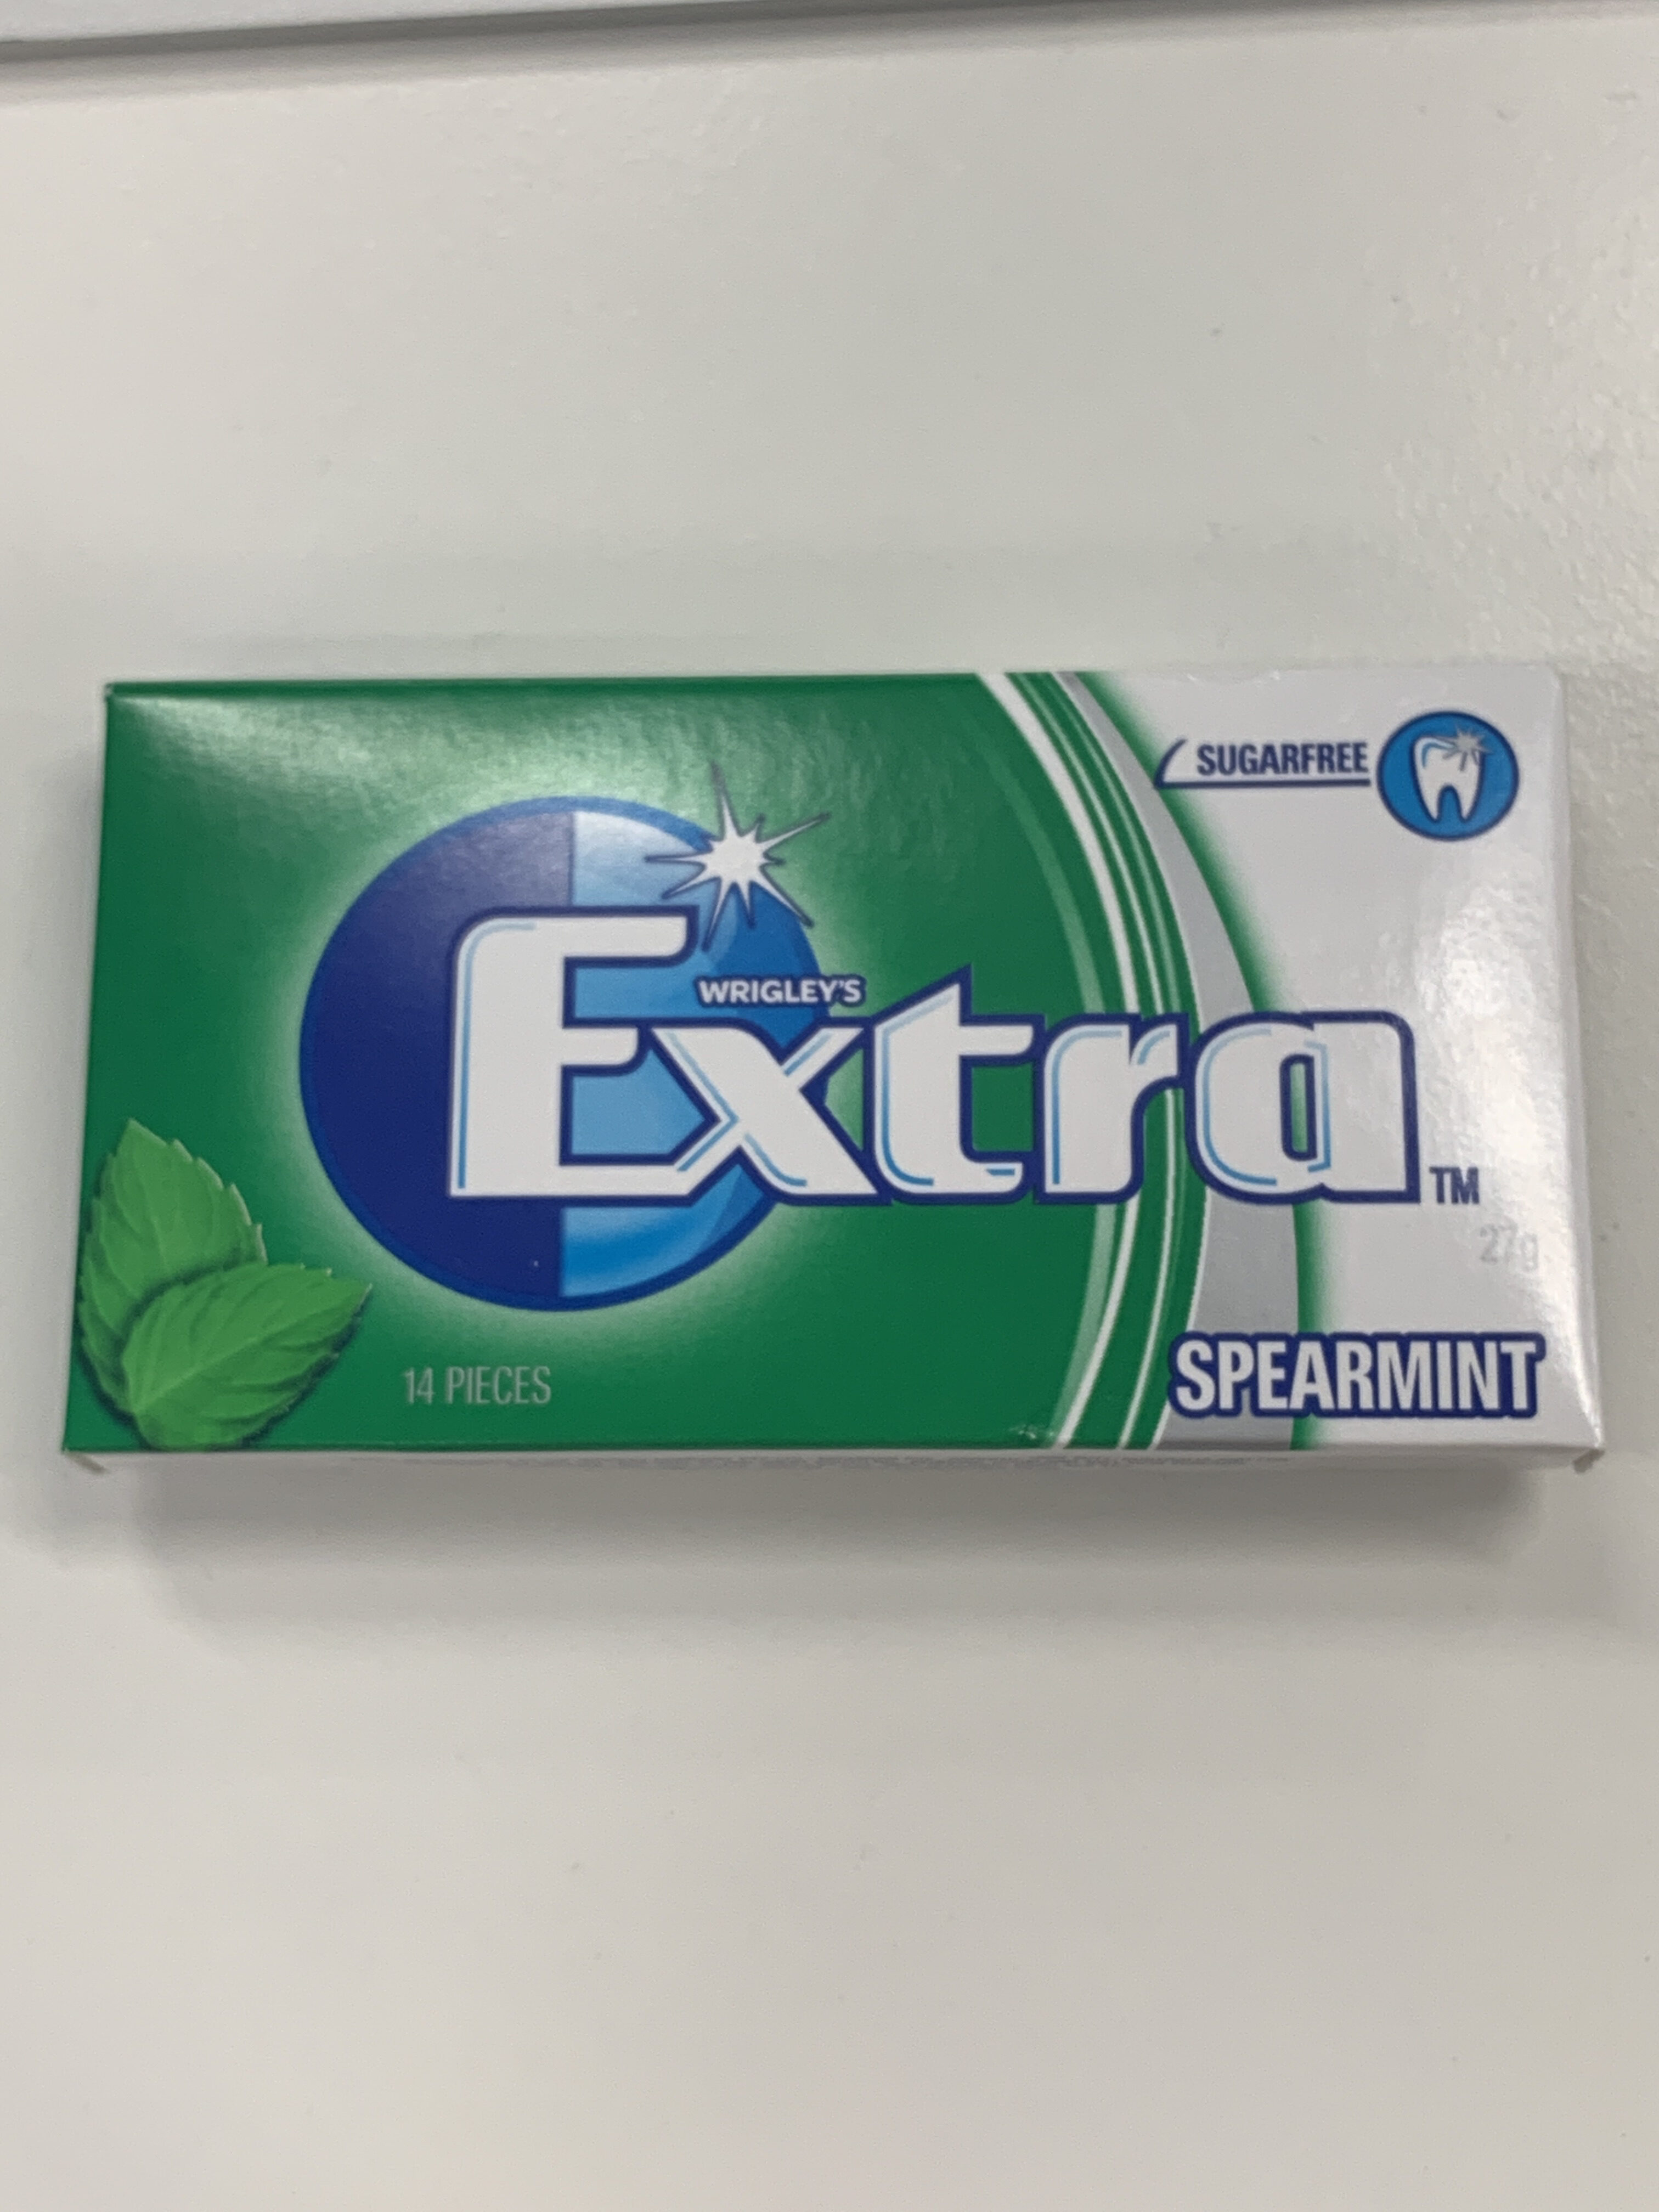 Wrigley's Extra Spearmint Tab Gum 14 Pieces 27G - Product - en